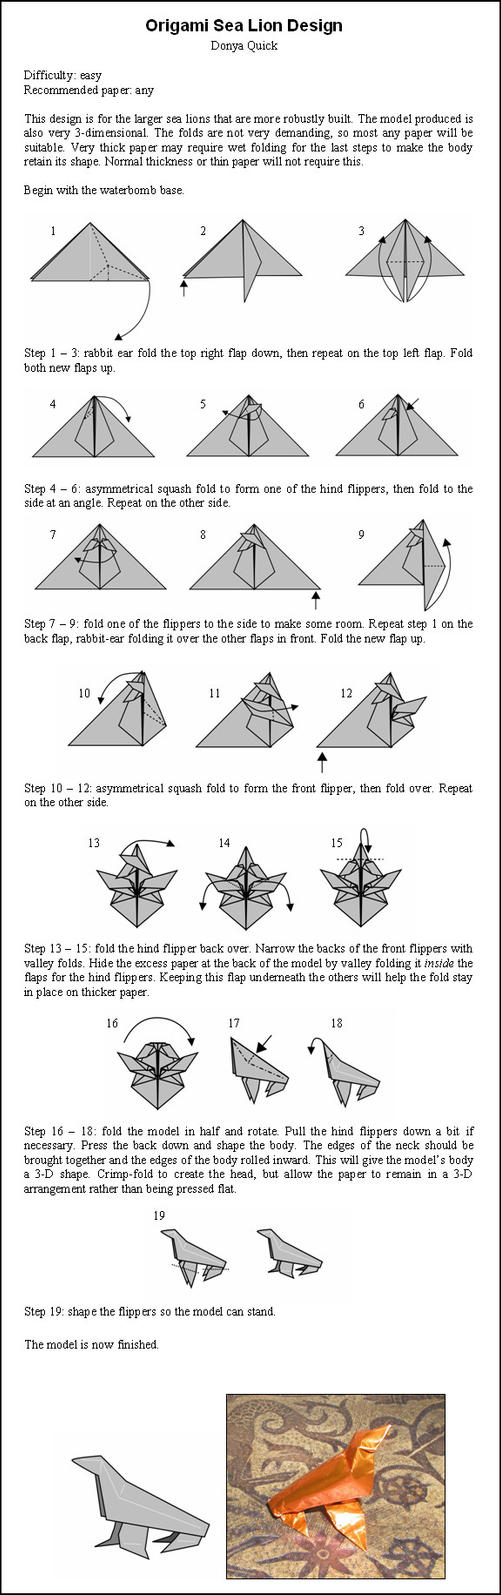 Origami sea lion instructions by donyaquick on deviantart origami sea lion instructions by donyaquick jeuxipadfo Image collections